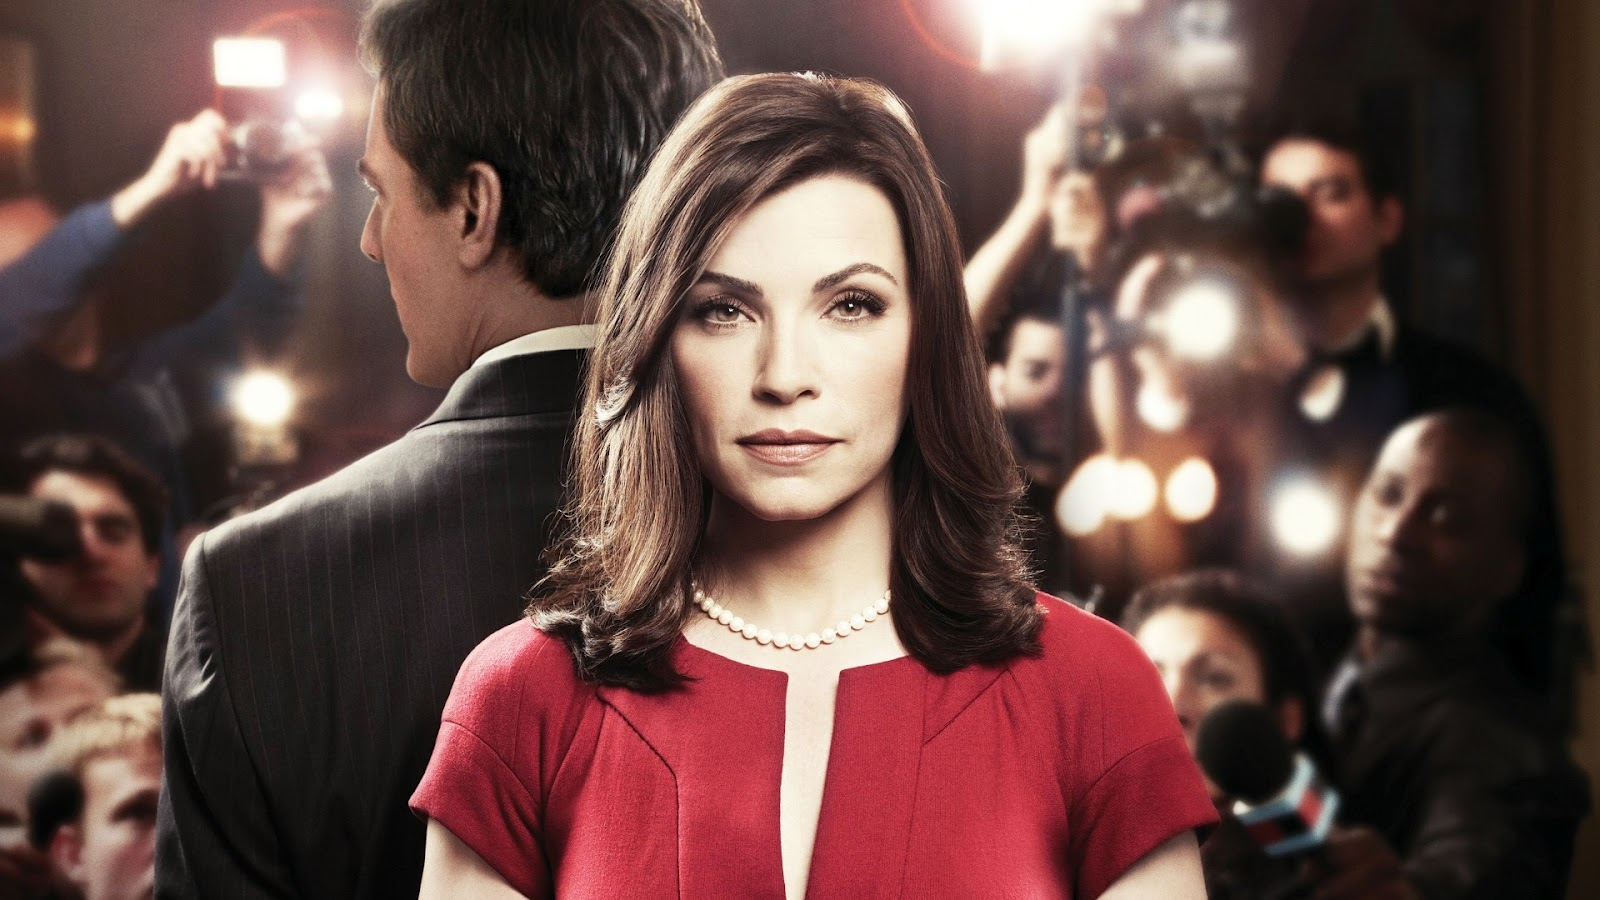 The Good Wife News: The Good Wife Overview